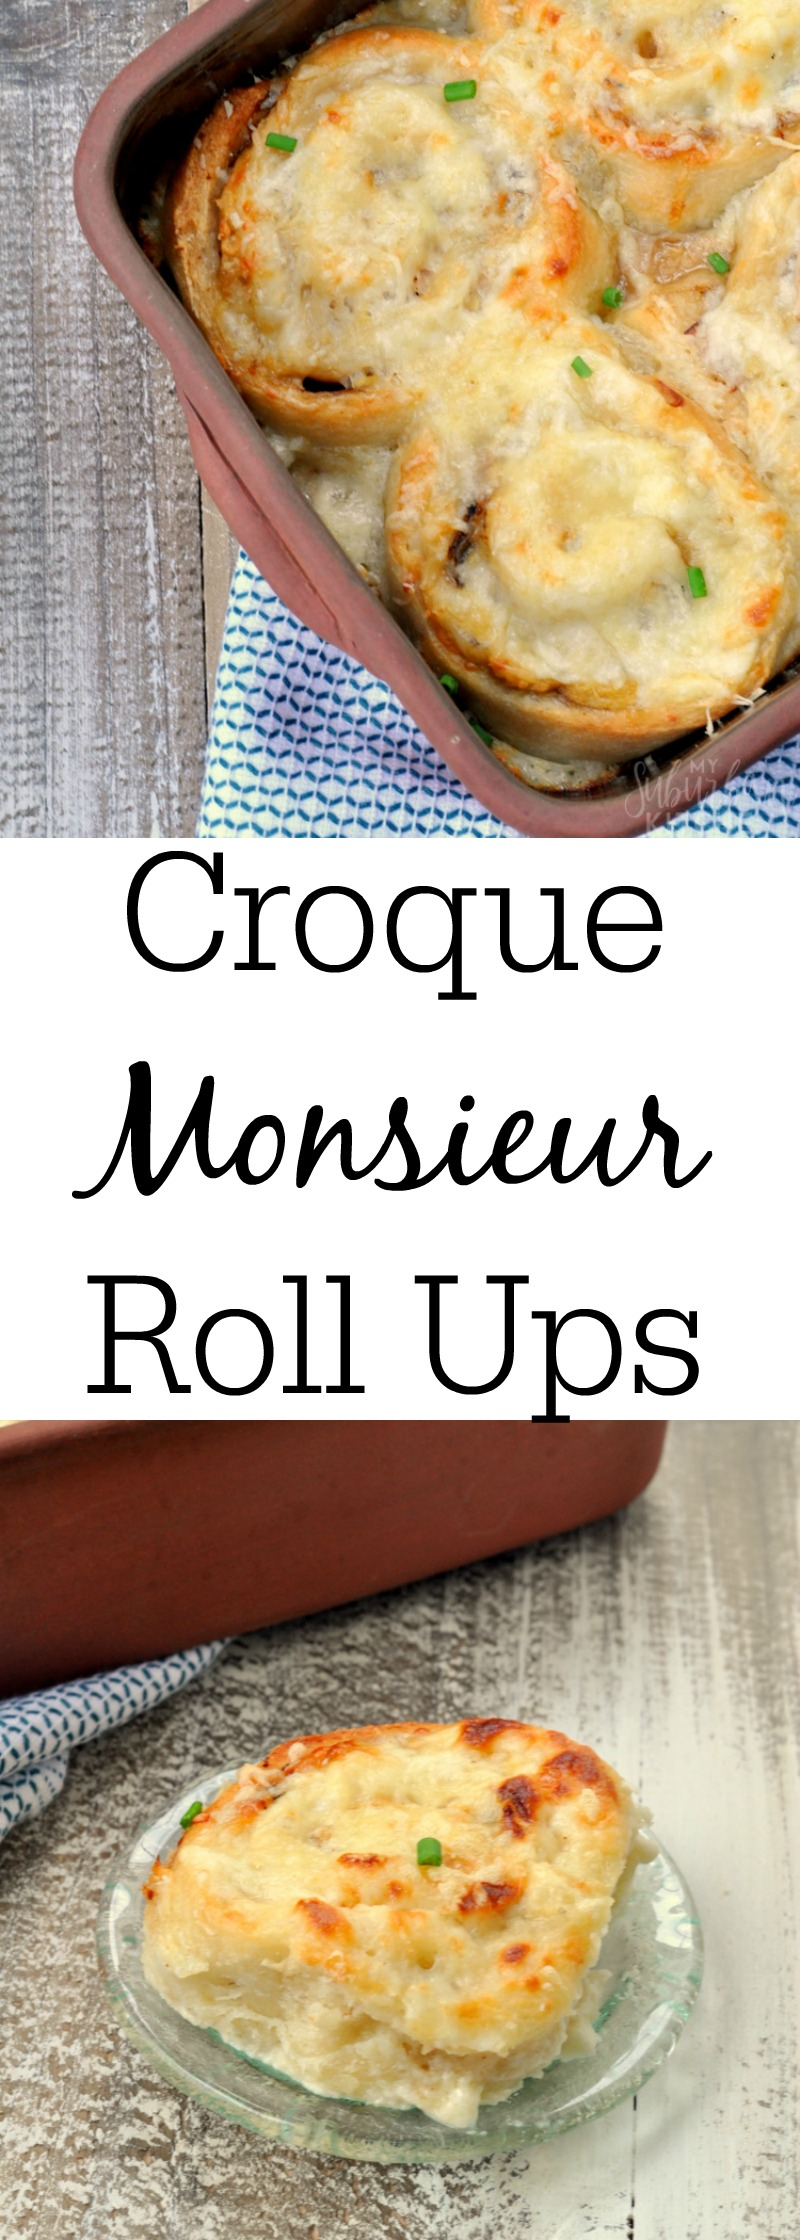 Croque Monsieur Roll-ups